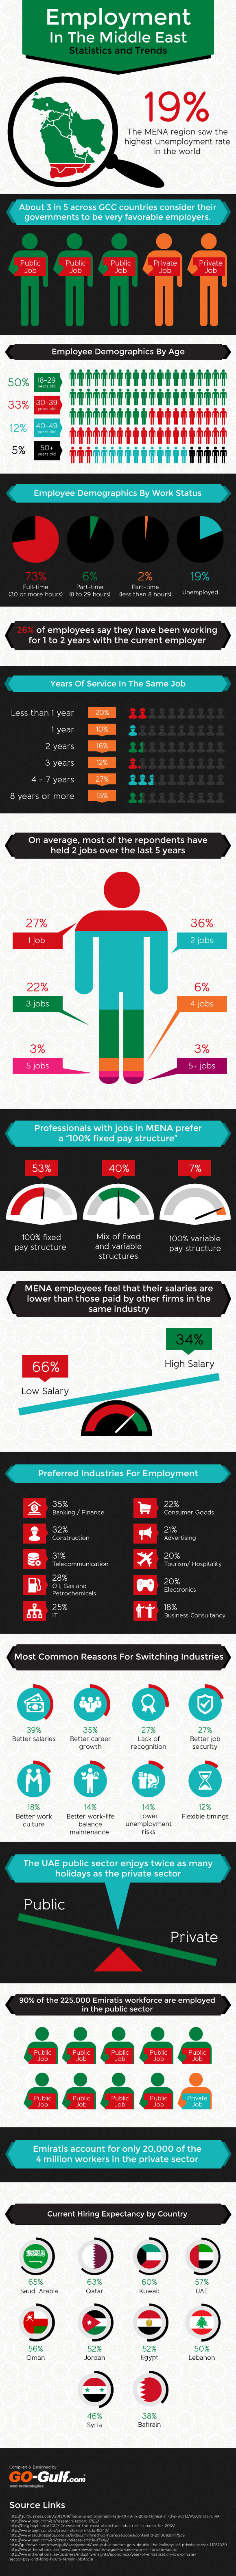 Employment In The Middle East – Statistics and Trends Infographic